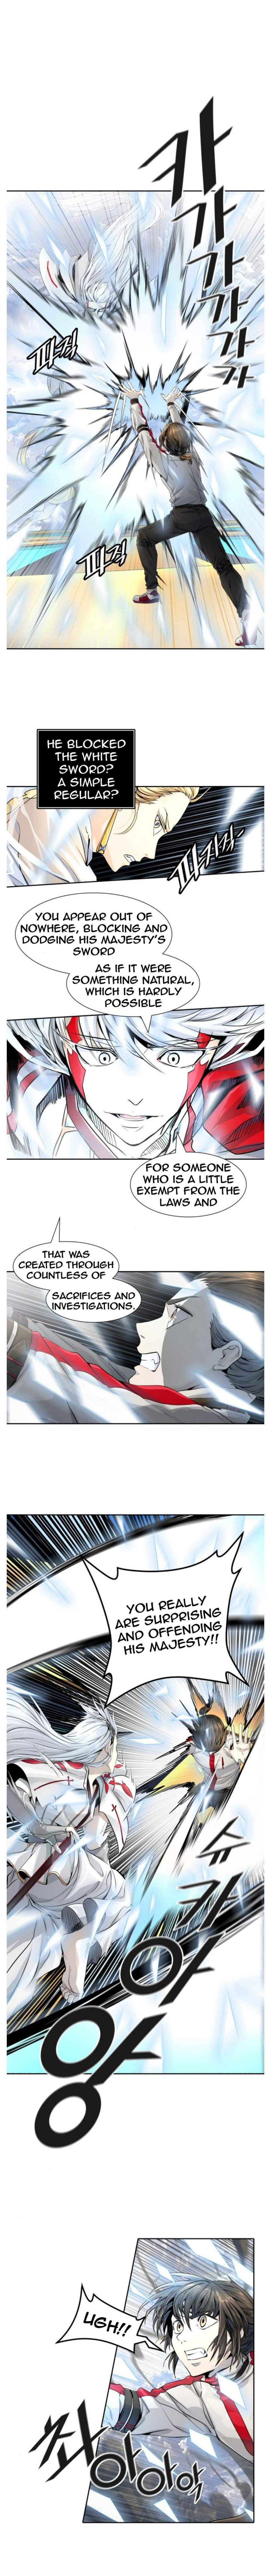 tower of god: Chapter 496 - Page 11